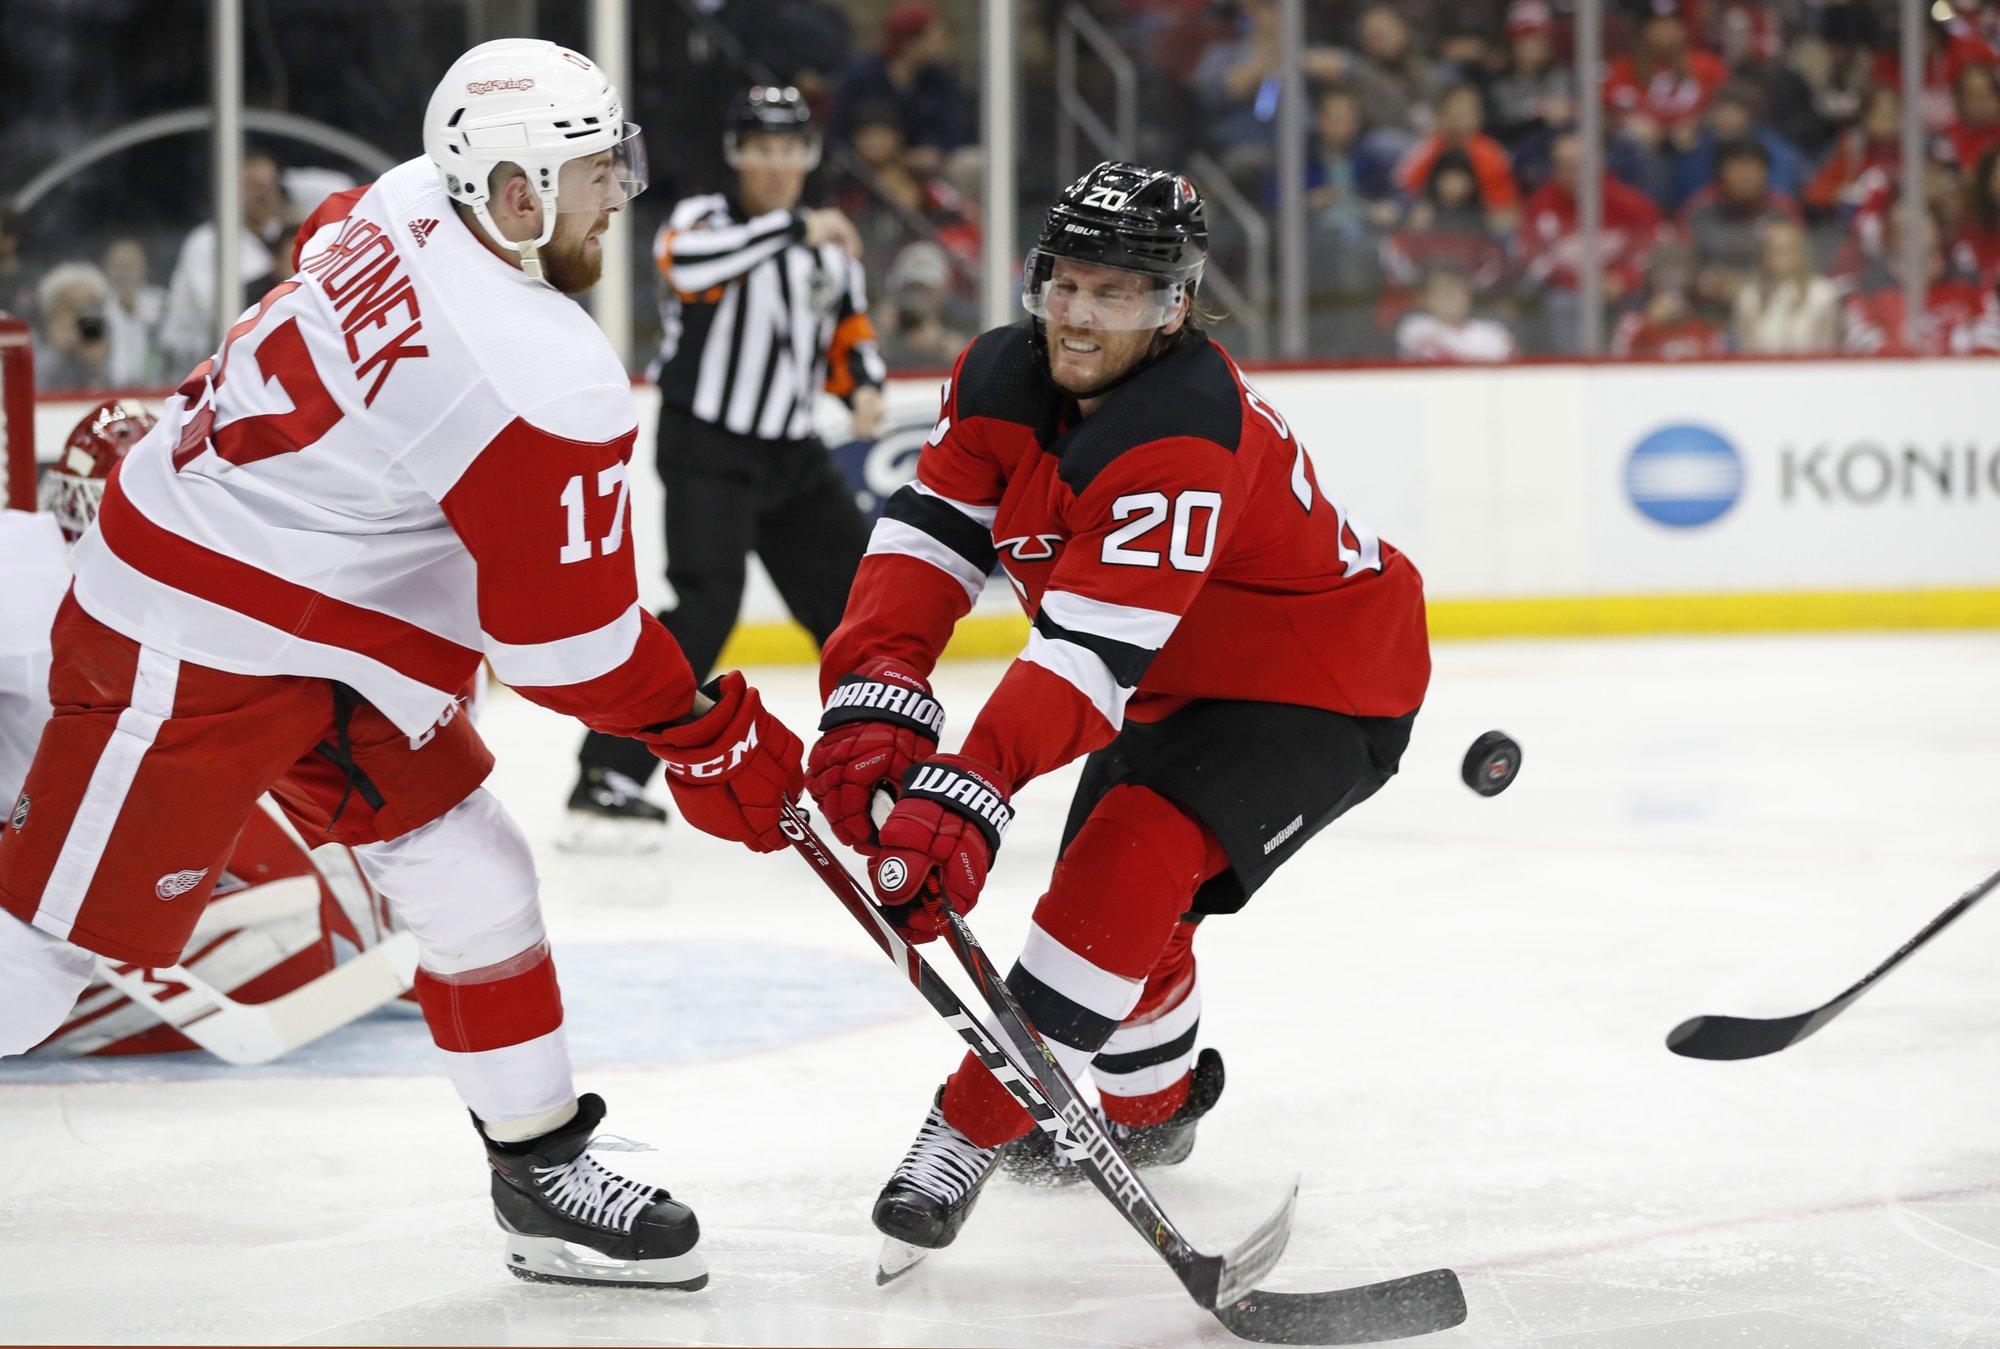 NJ devils' speaks about trade rumors, said 'Its just a lot of noise'